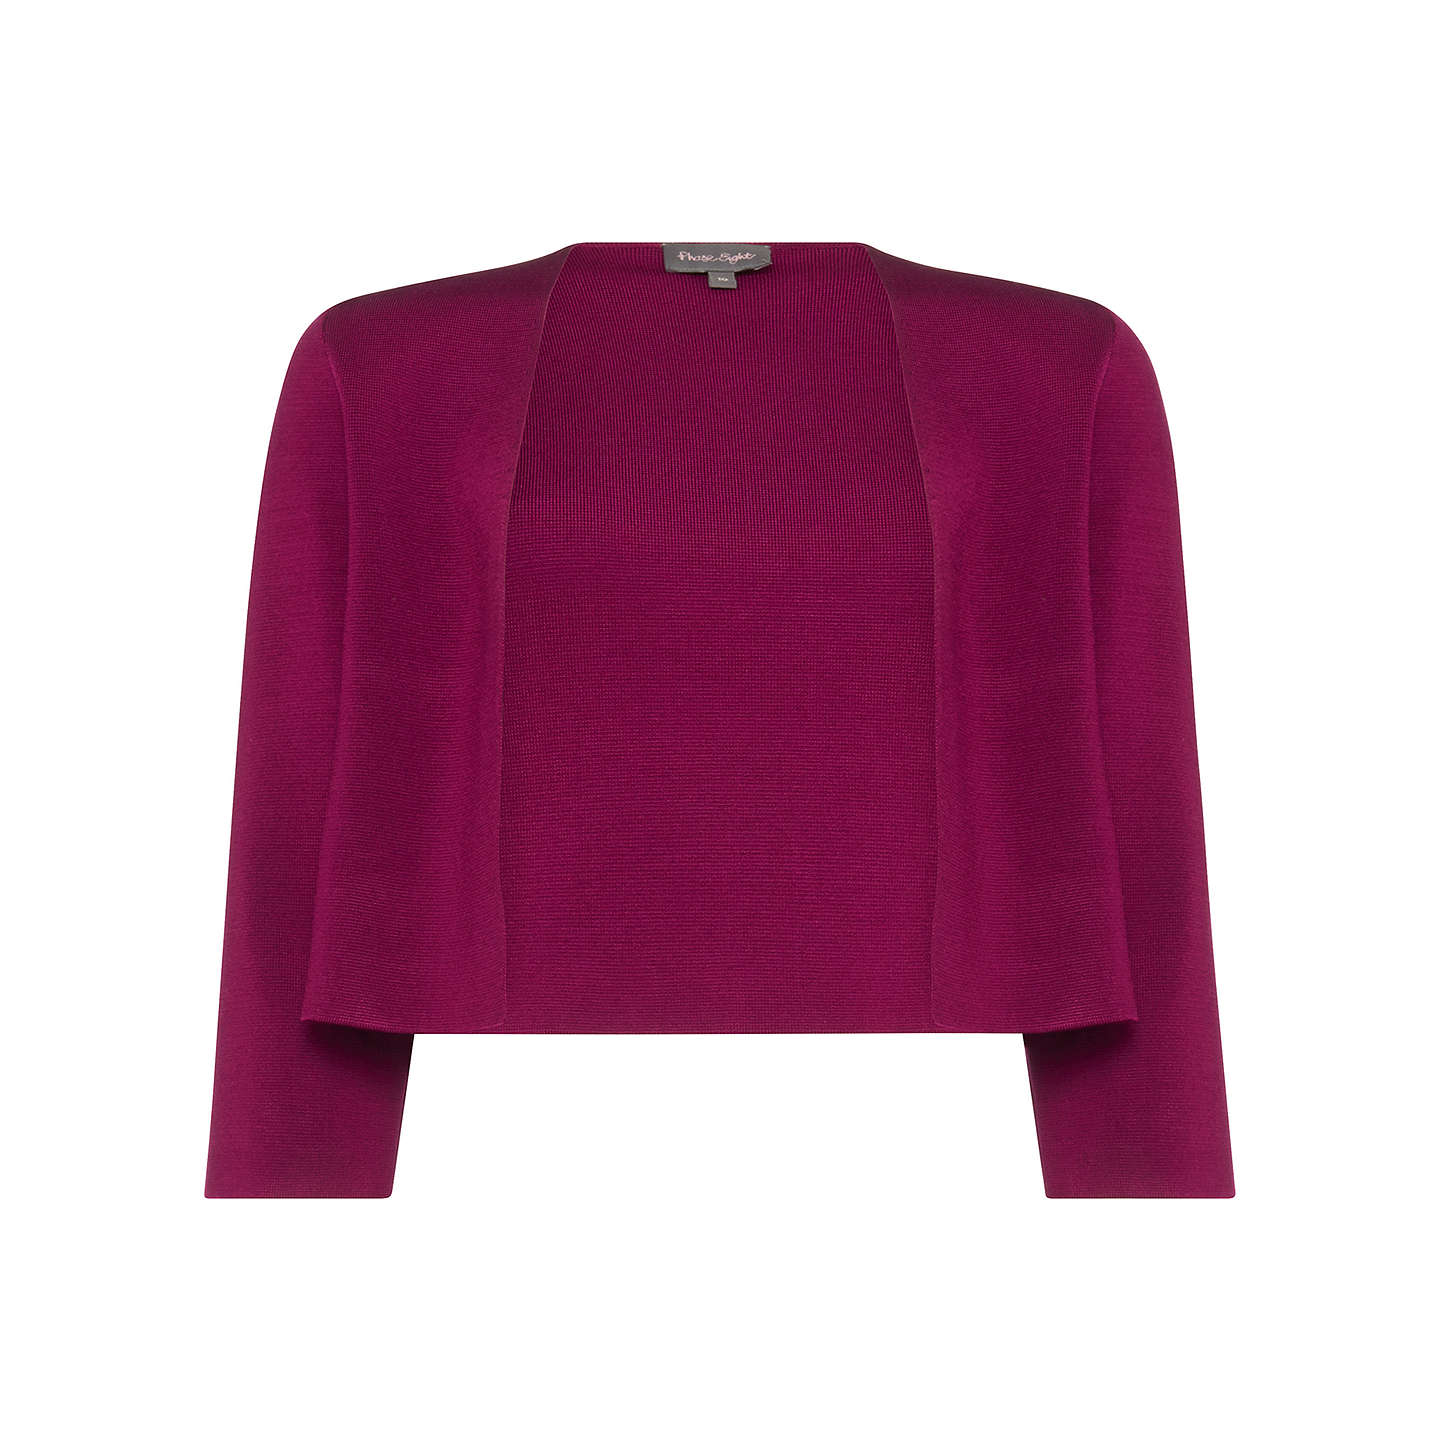 BuyPhase Eight Salma Knitted Jacket, Aubergine, 10 Online at johnlewis.com